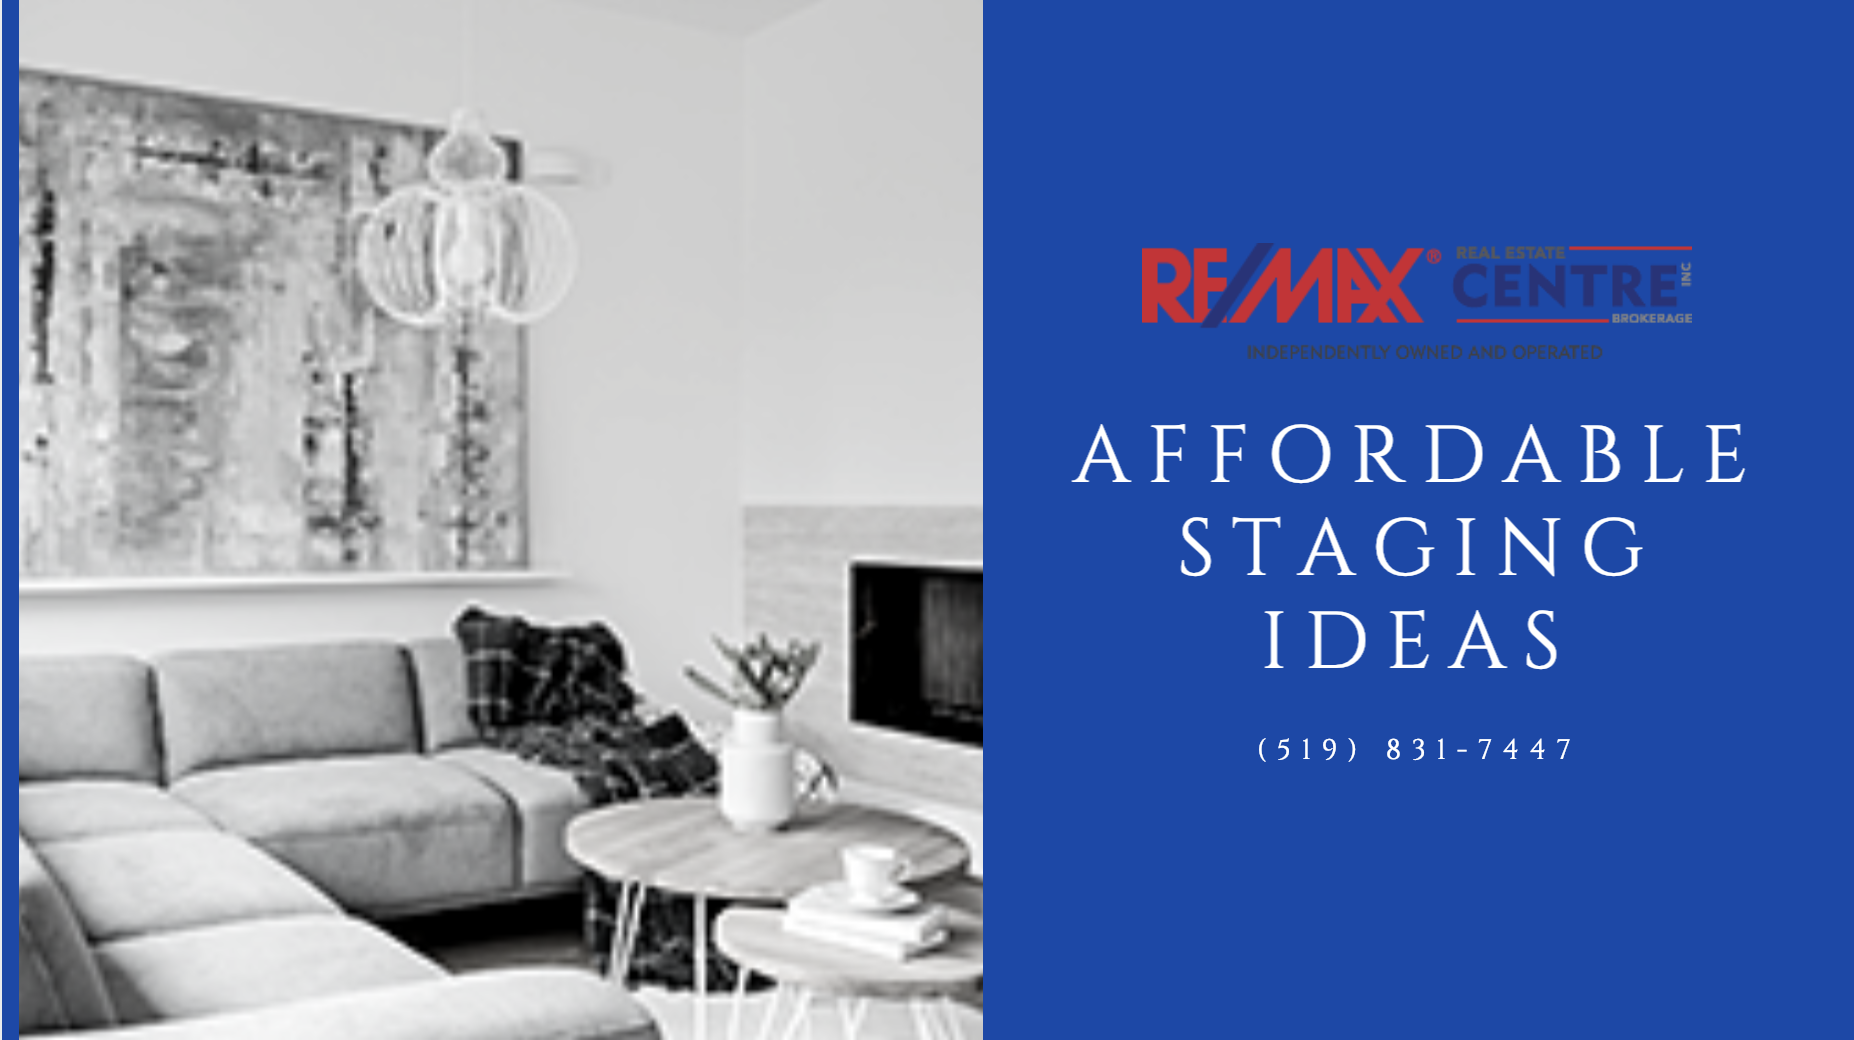 Affordable Staging Ideas - Guelph Realtors